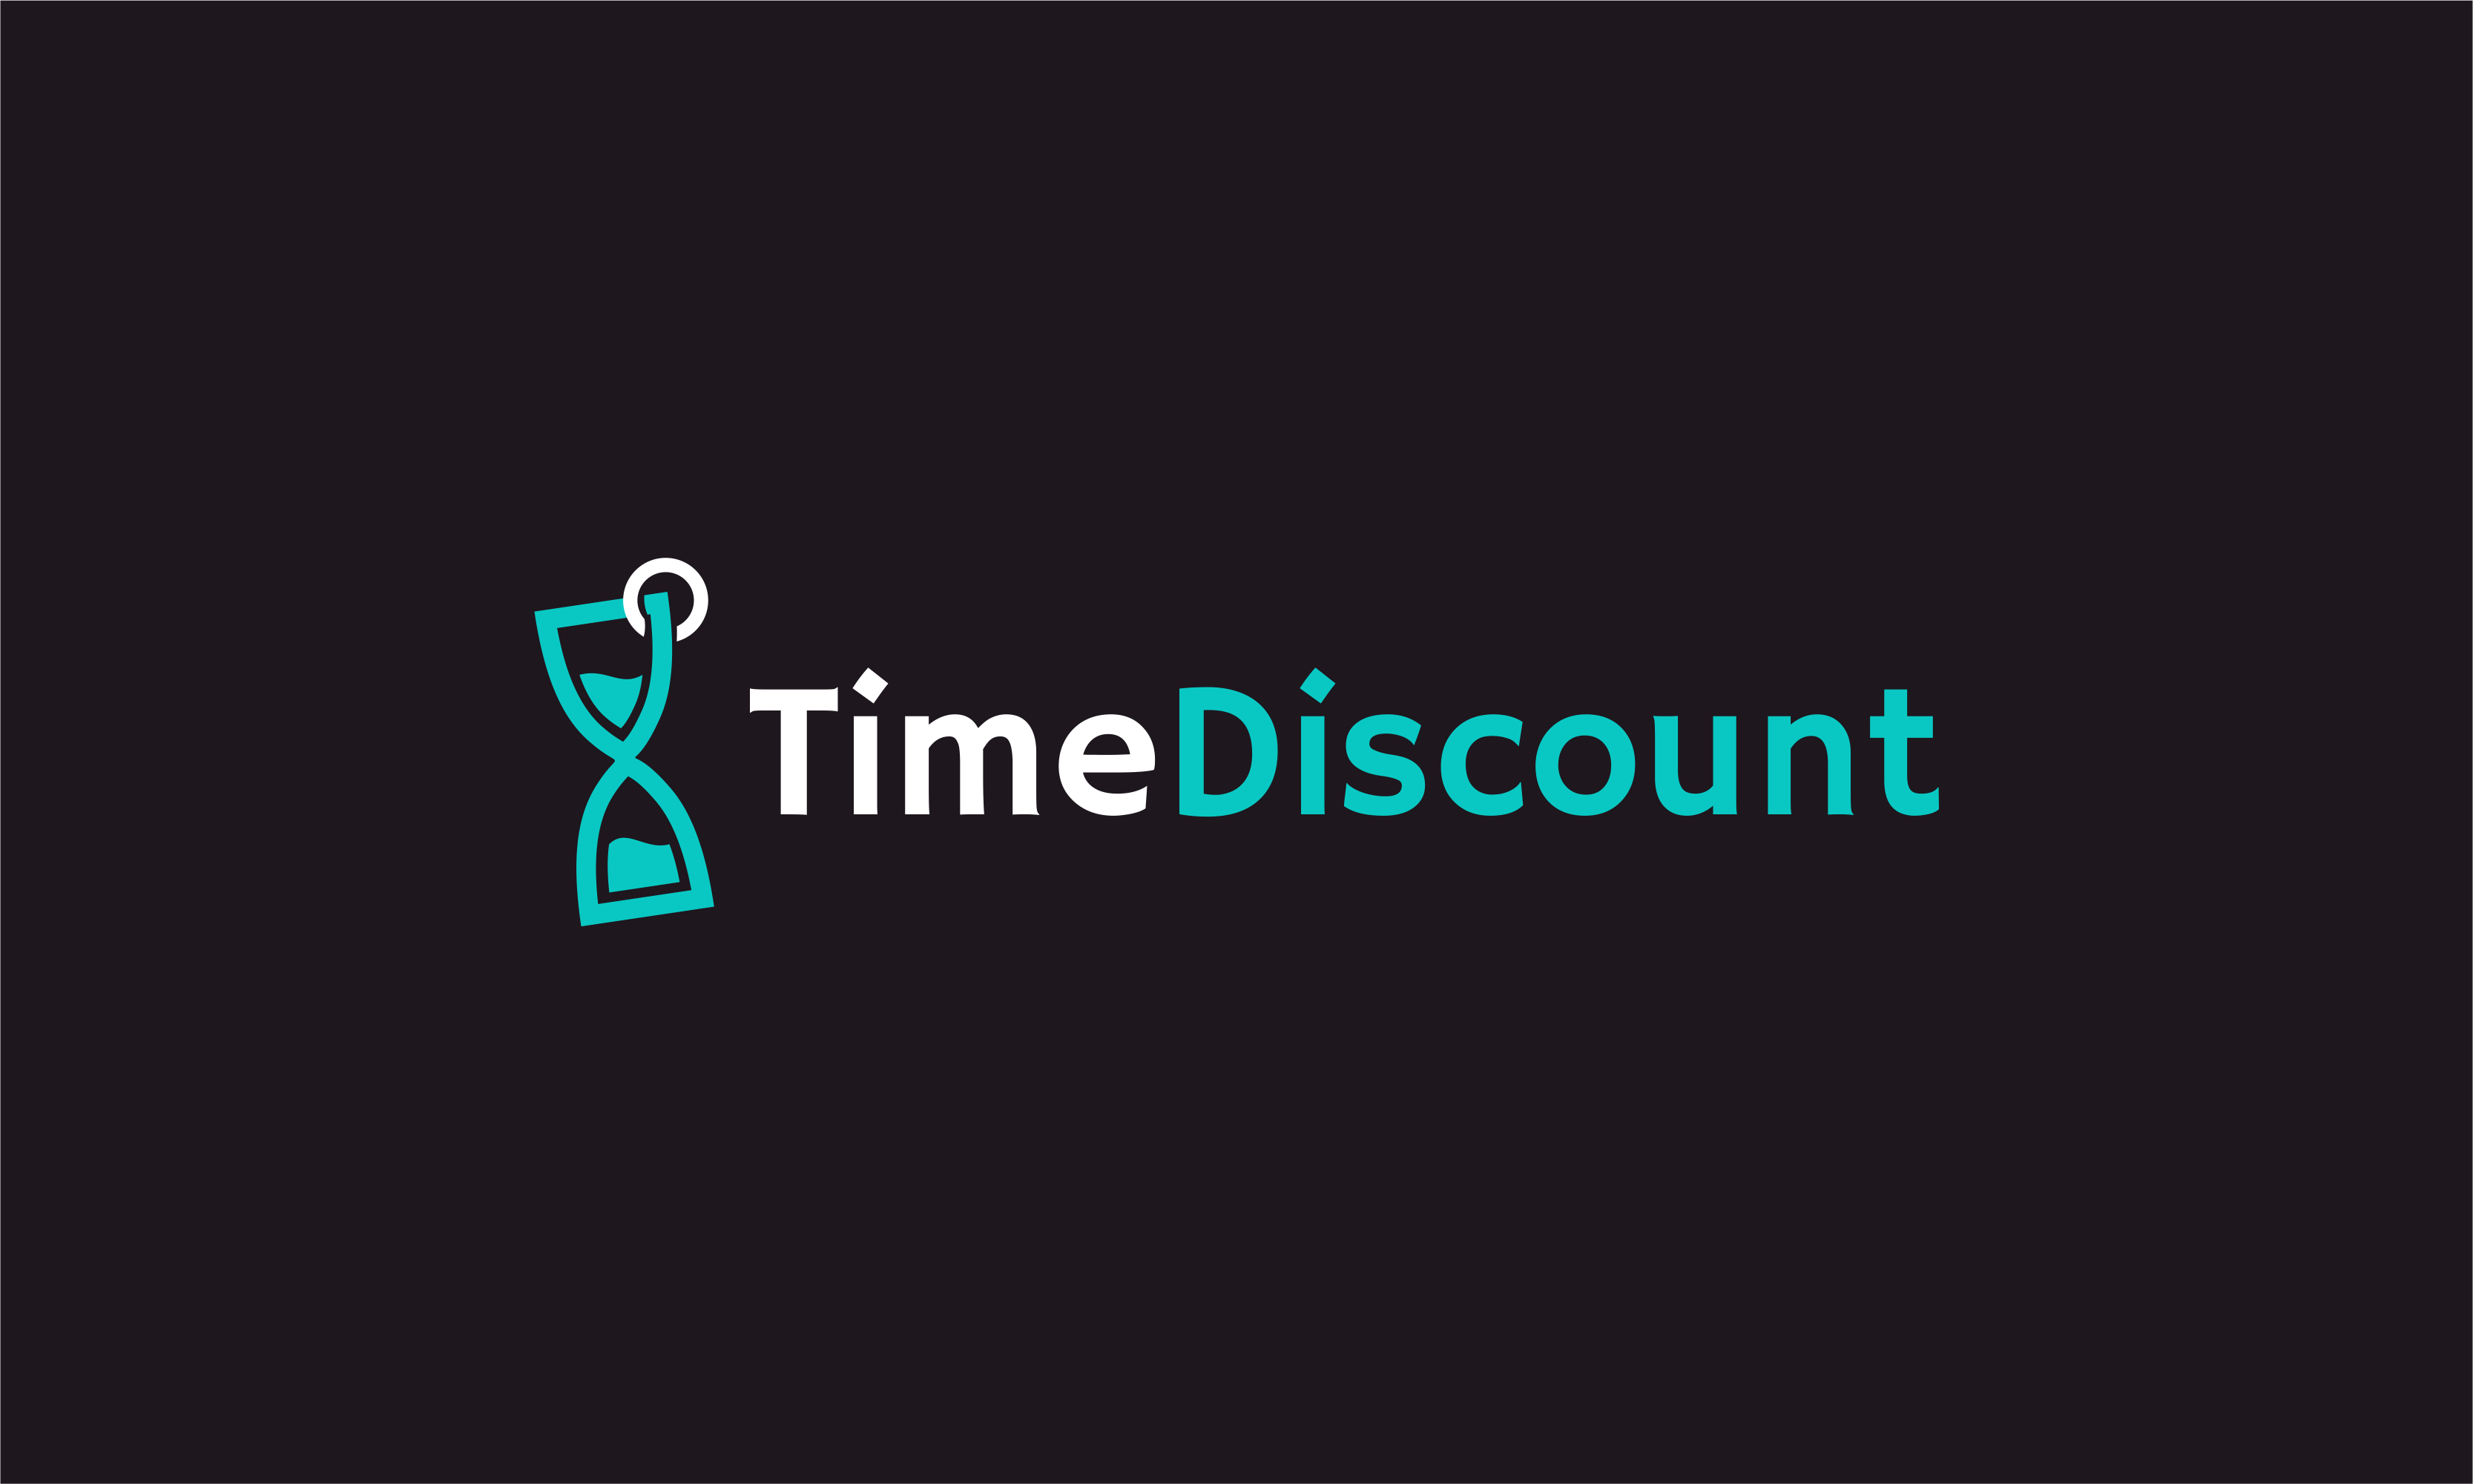 Timediscount - E-commerce domain name for sale